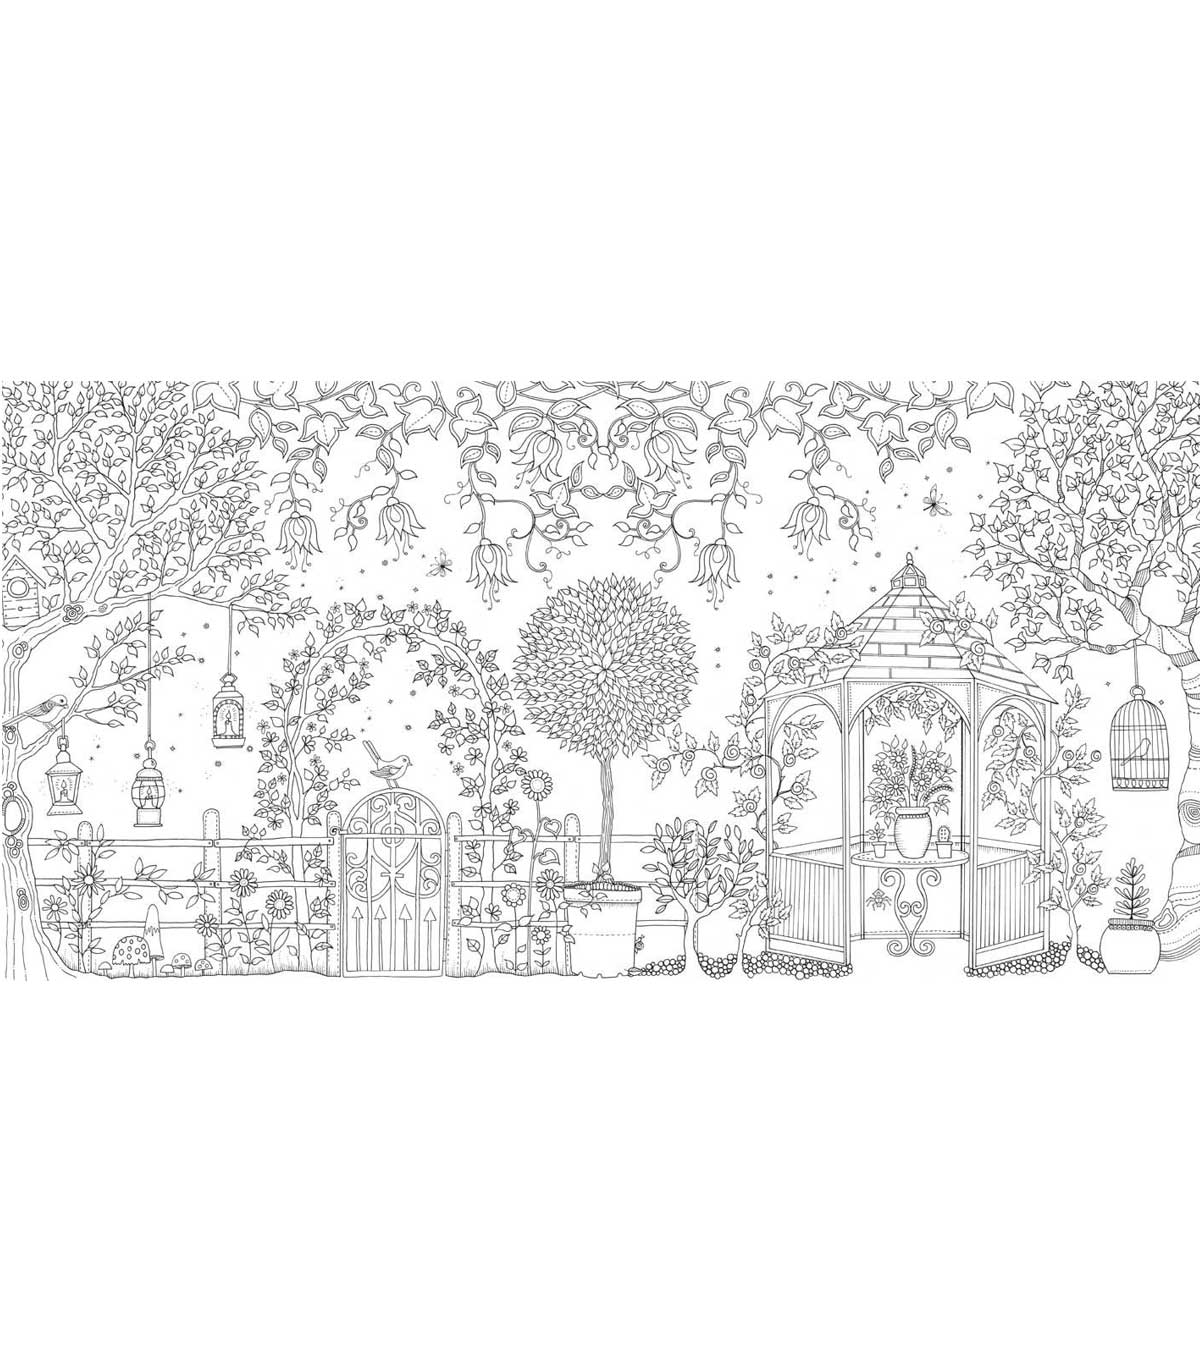 secret garden coloring pages completed operations   Secret Garden Coloring Book - Chronicle Books   JOANN